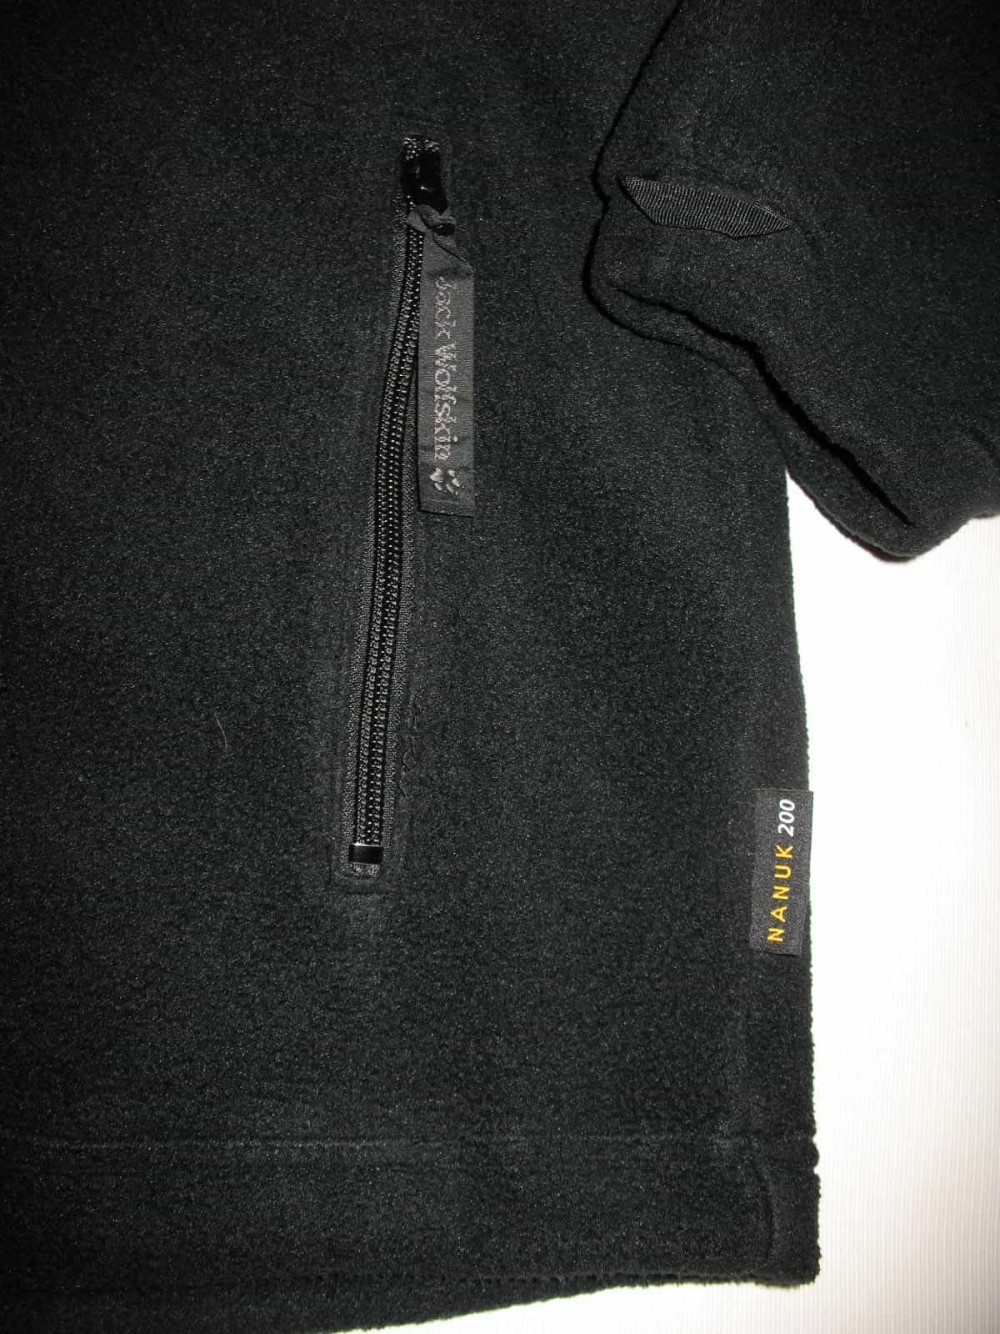 Куртка JACK WOLFSKIN nanuk 200 fleece jacket (размер L) - 7